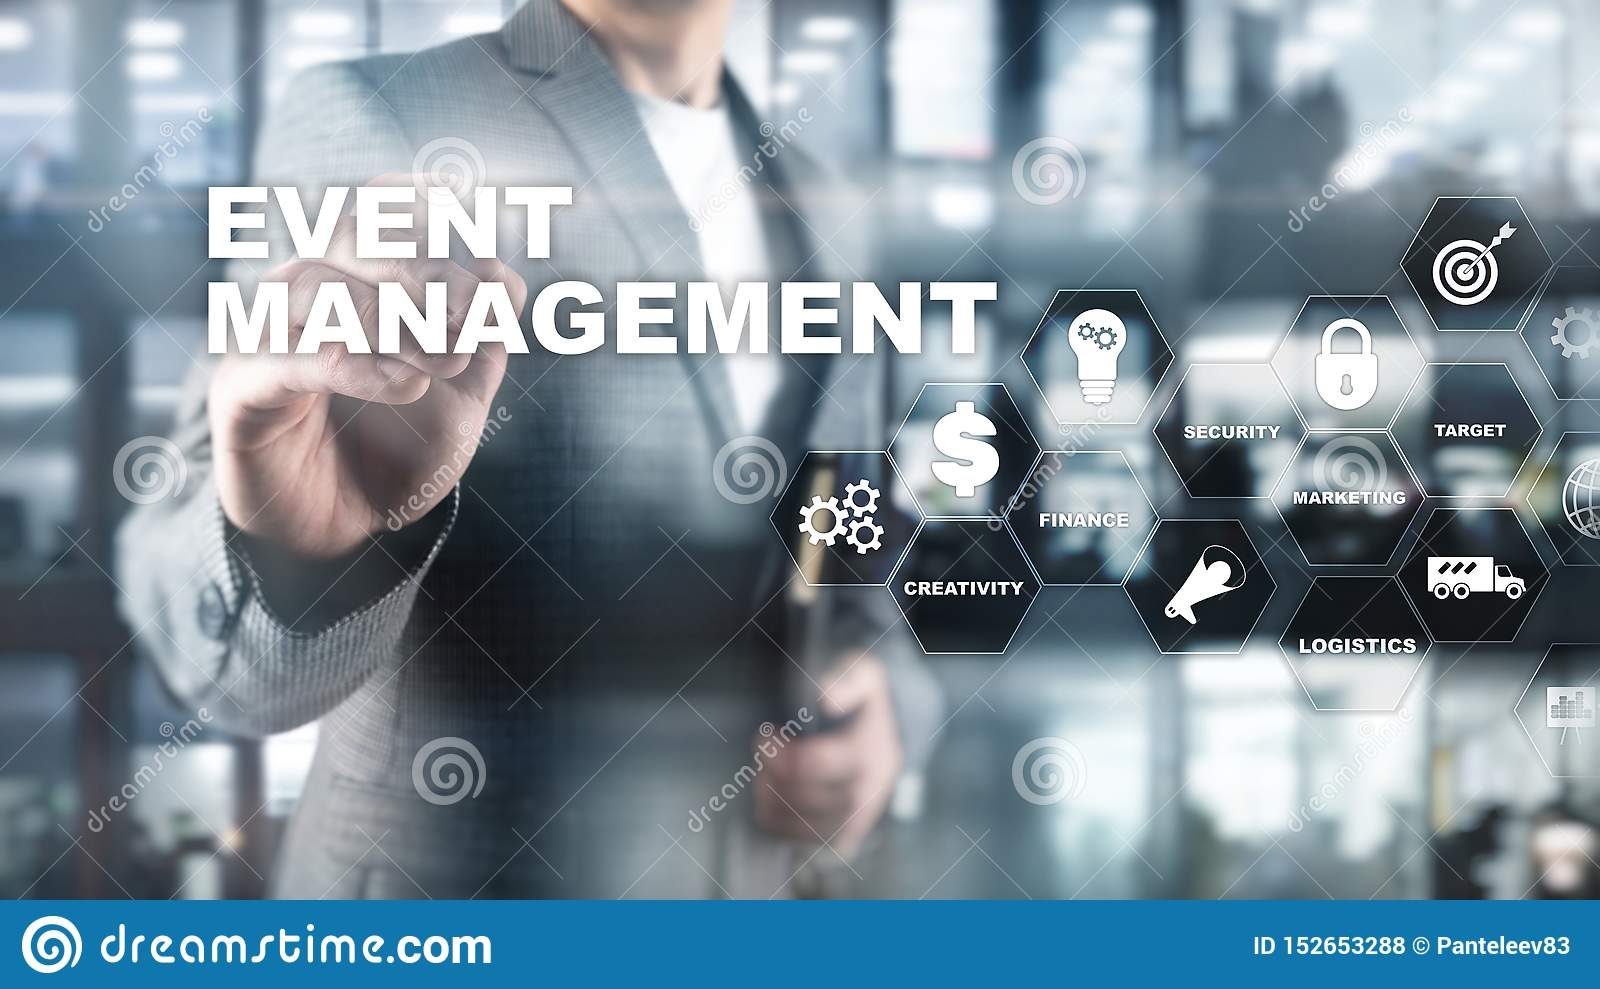 Event management Concept. Event management flowchart. Event management related items. Mixed media business